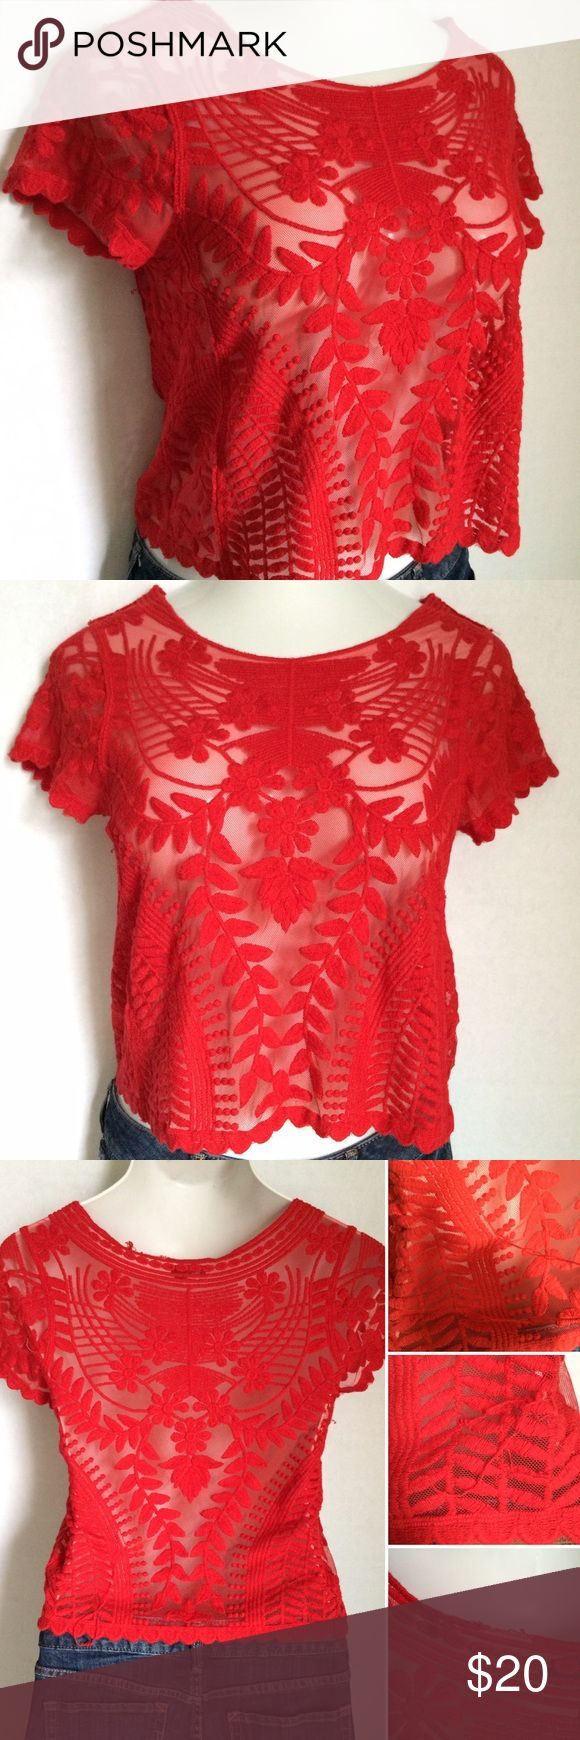 """Express red lace top ✨Host Pick✨ Beautiful red Express floral lace top with short sleeves and a cropped length. There are a few places on the back that have some embroidery unraveled, see third photo. Size XS, but fits my 4/6 mannequin with 35.5"""" bust well. 100% nylon. Decoration: 100% cotton. Not interested in trades. Express Tops"""